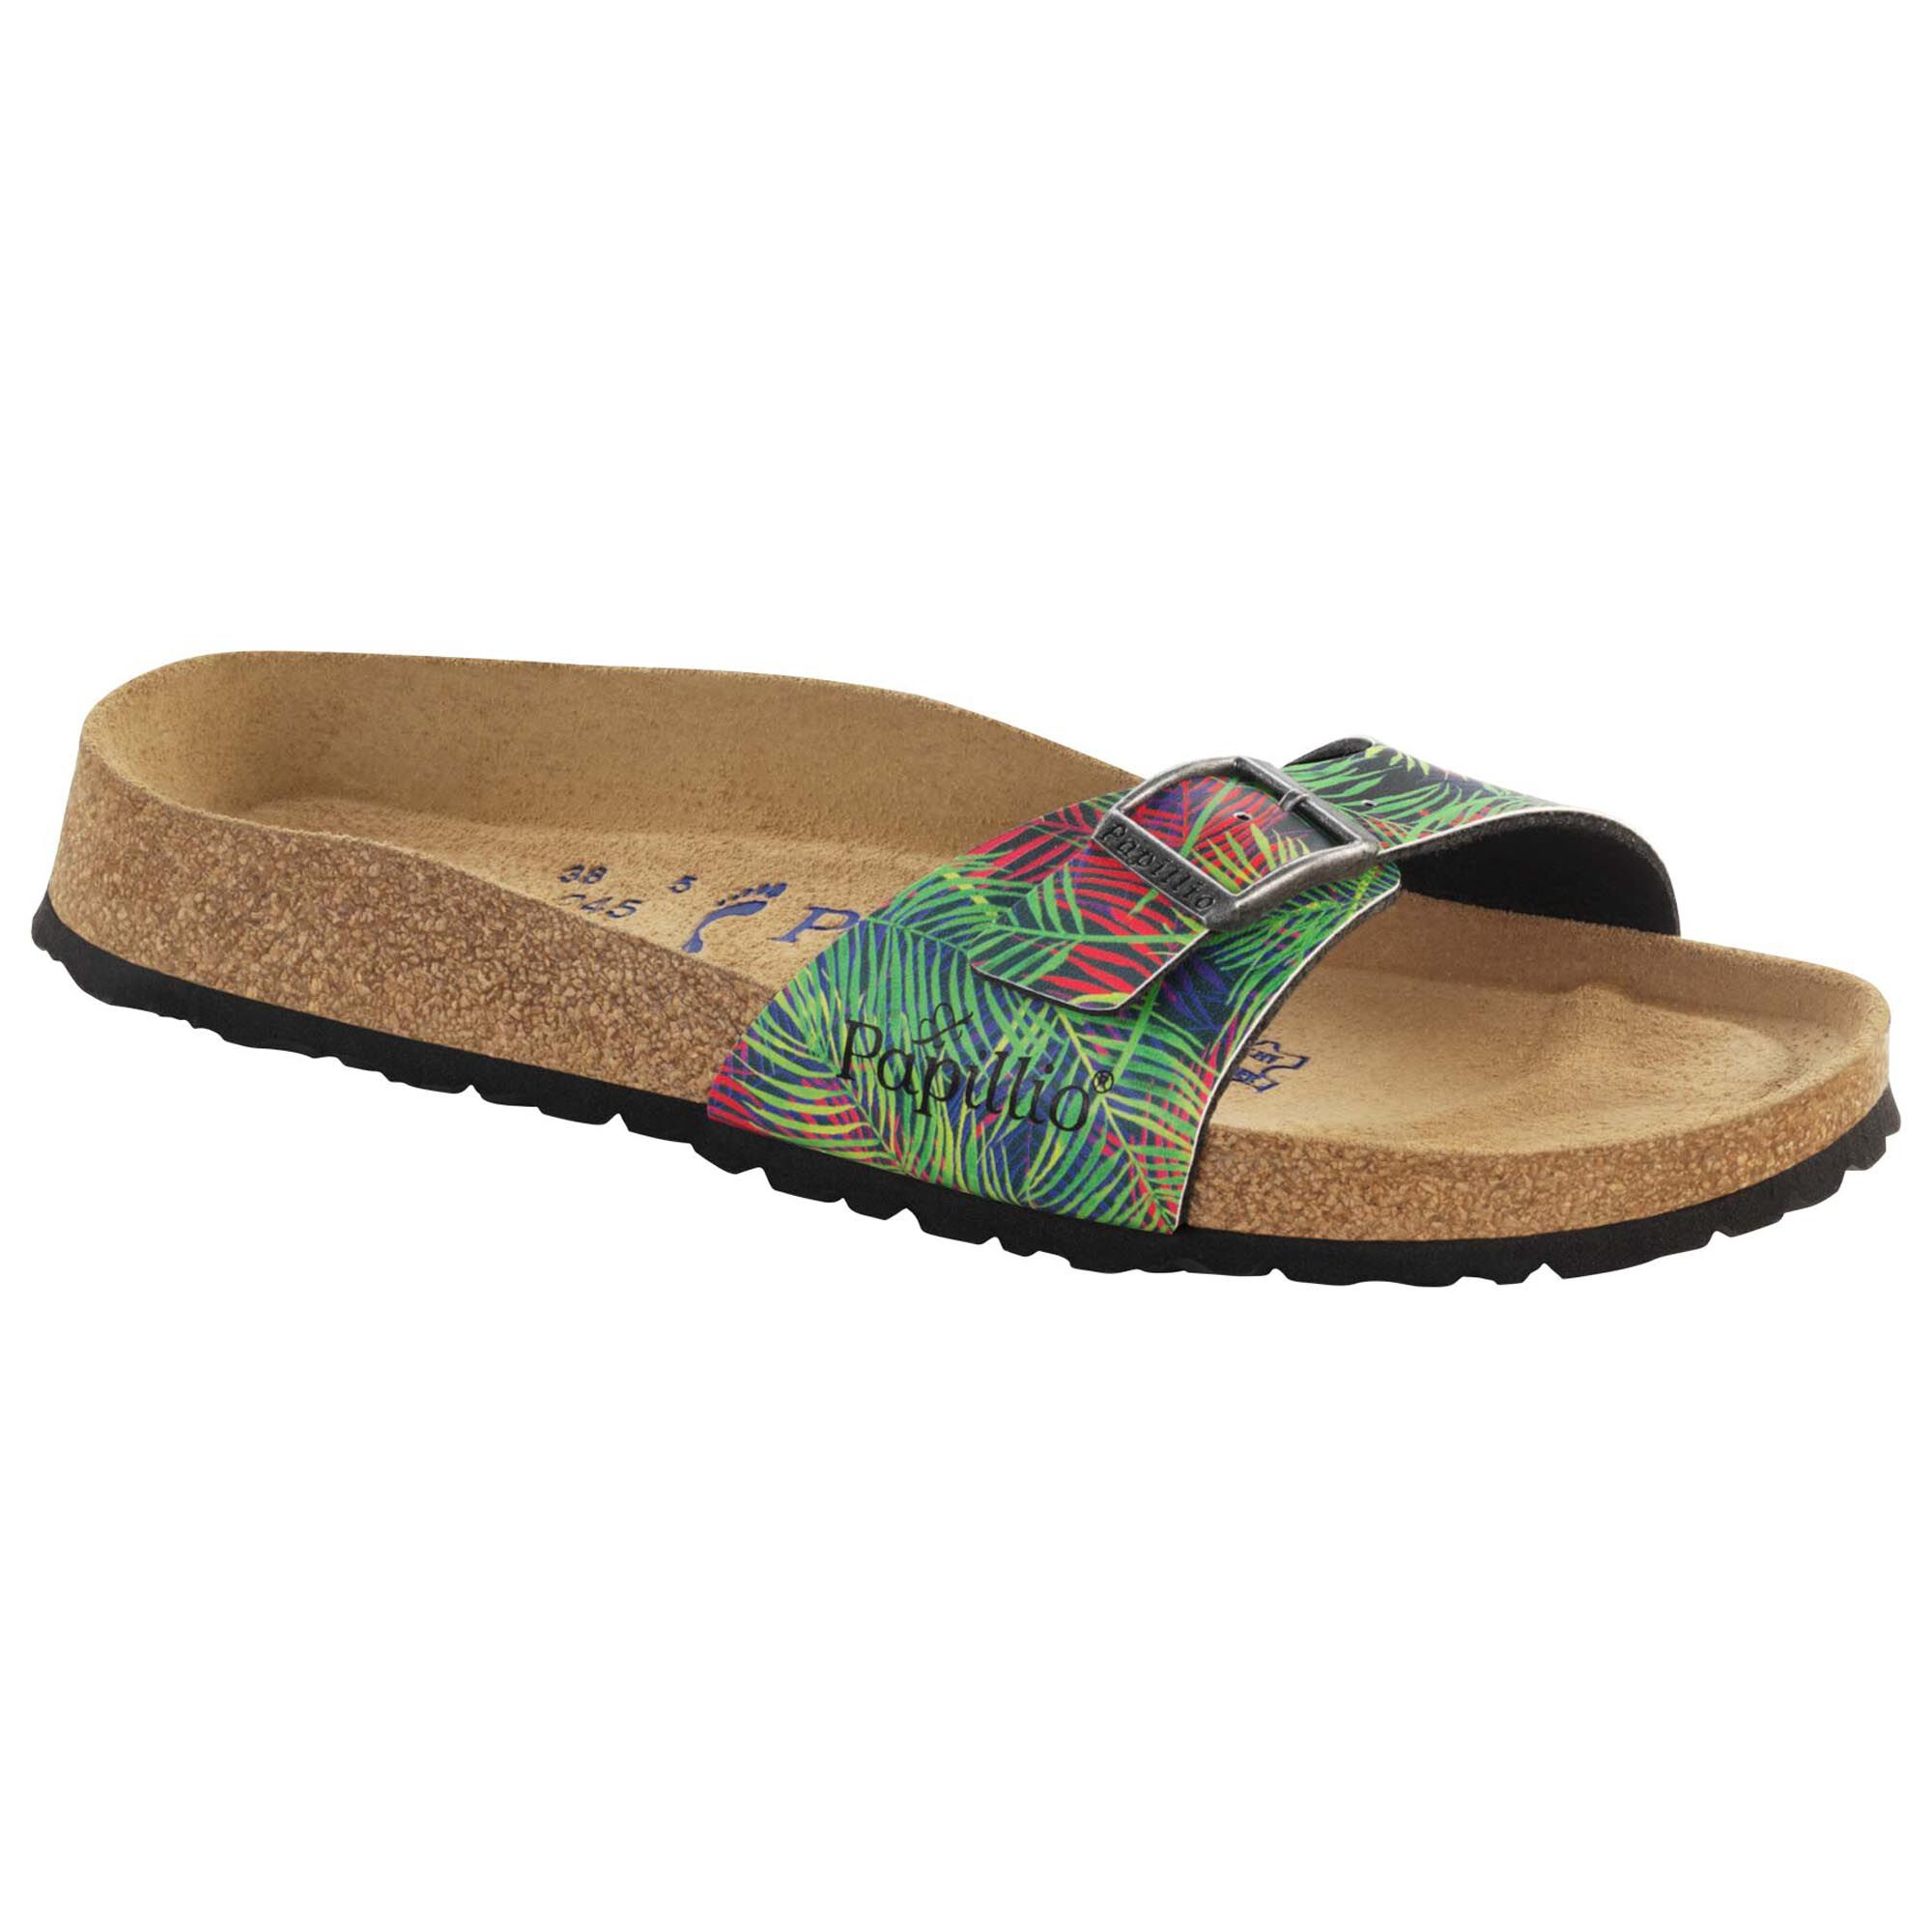 Madrid Birko Flor Tropical Leaf Multicolor